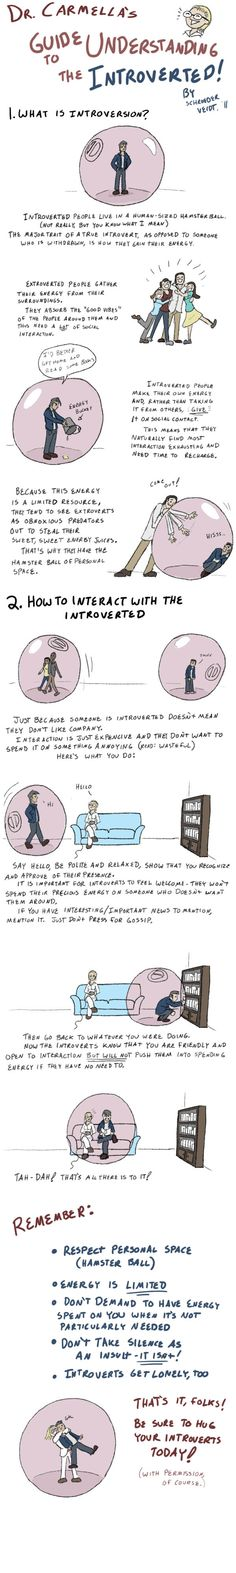 How to Live with Introverts by *SVeidt on deviantART